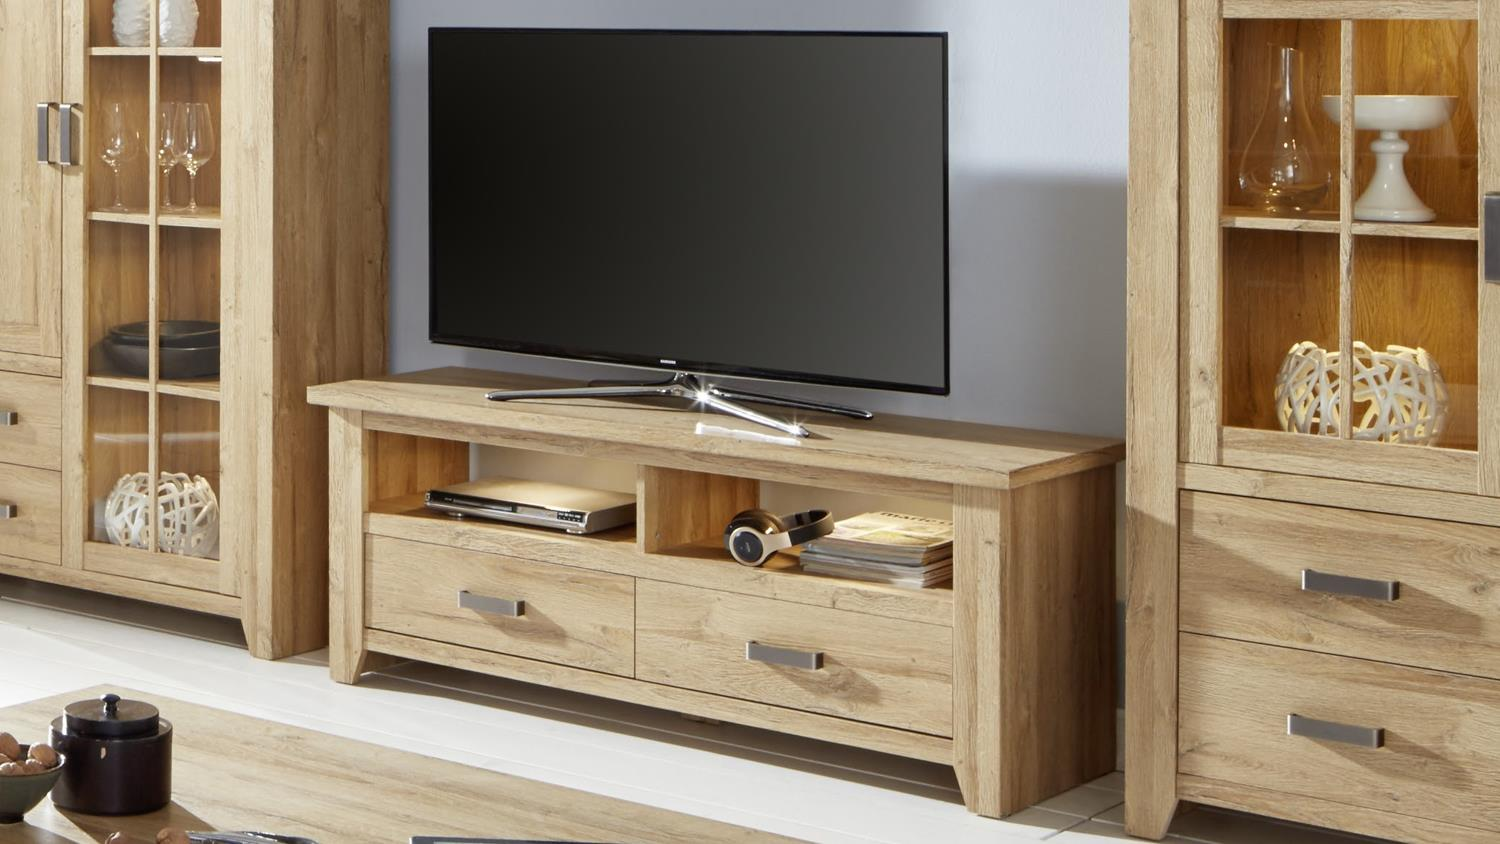 tv board 1 canyon lowboard unterschrank fernsehrschrank in alteiche. Black Bedroom Furniture Sets. Home Design Ideas